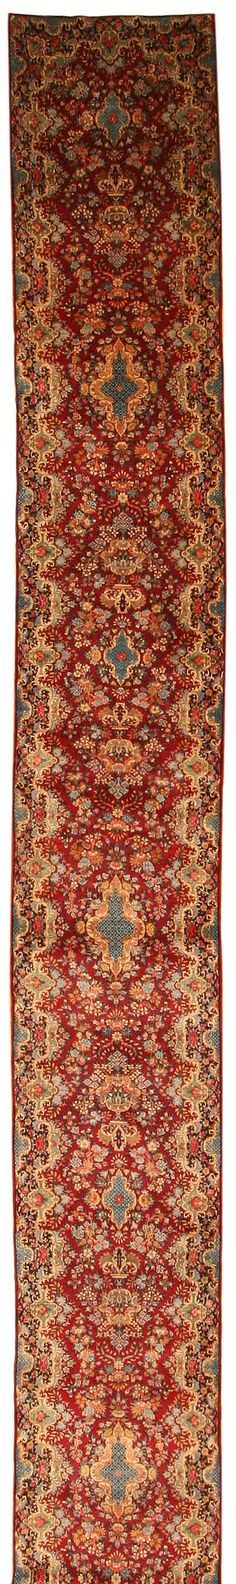 View this beautiful fine antique Kerman Persian long runner rug 43853 from Nazmiyal's fine antique rugs and decorative carpet collection.